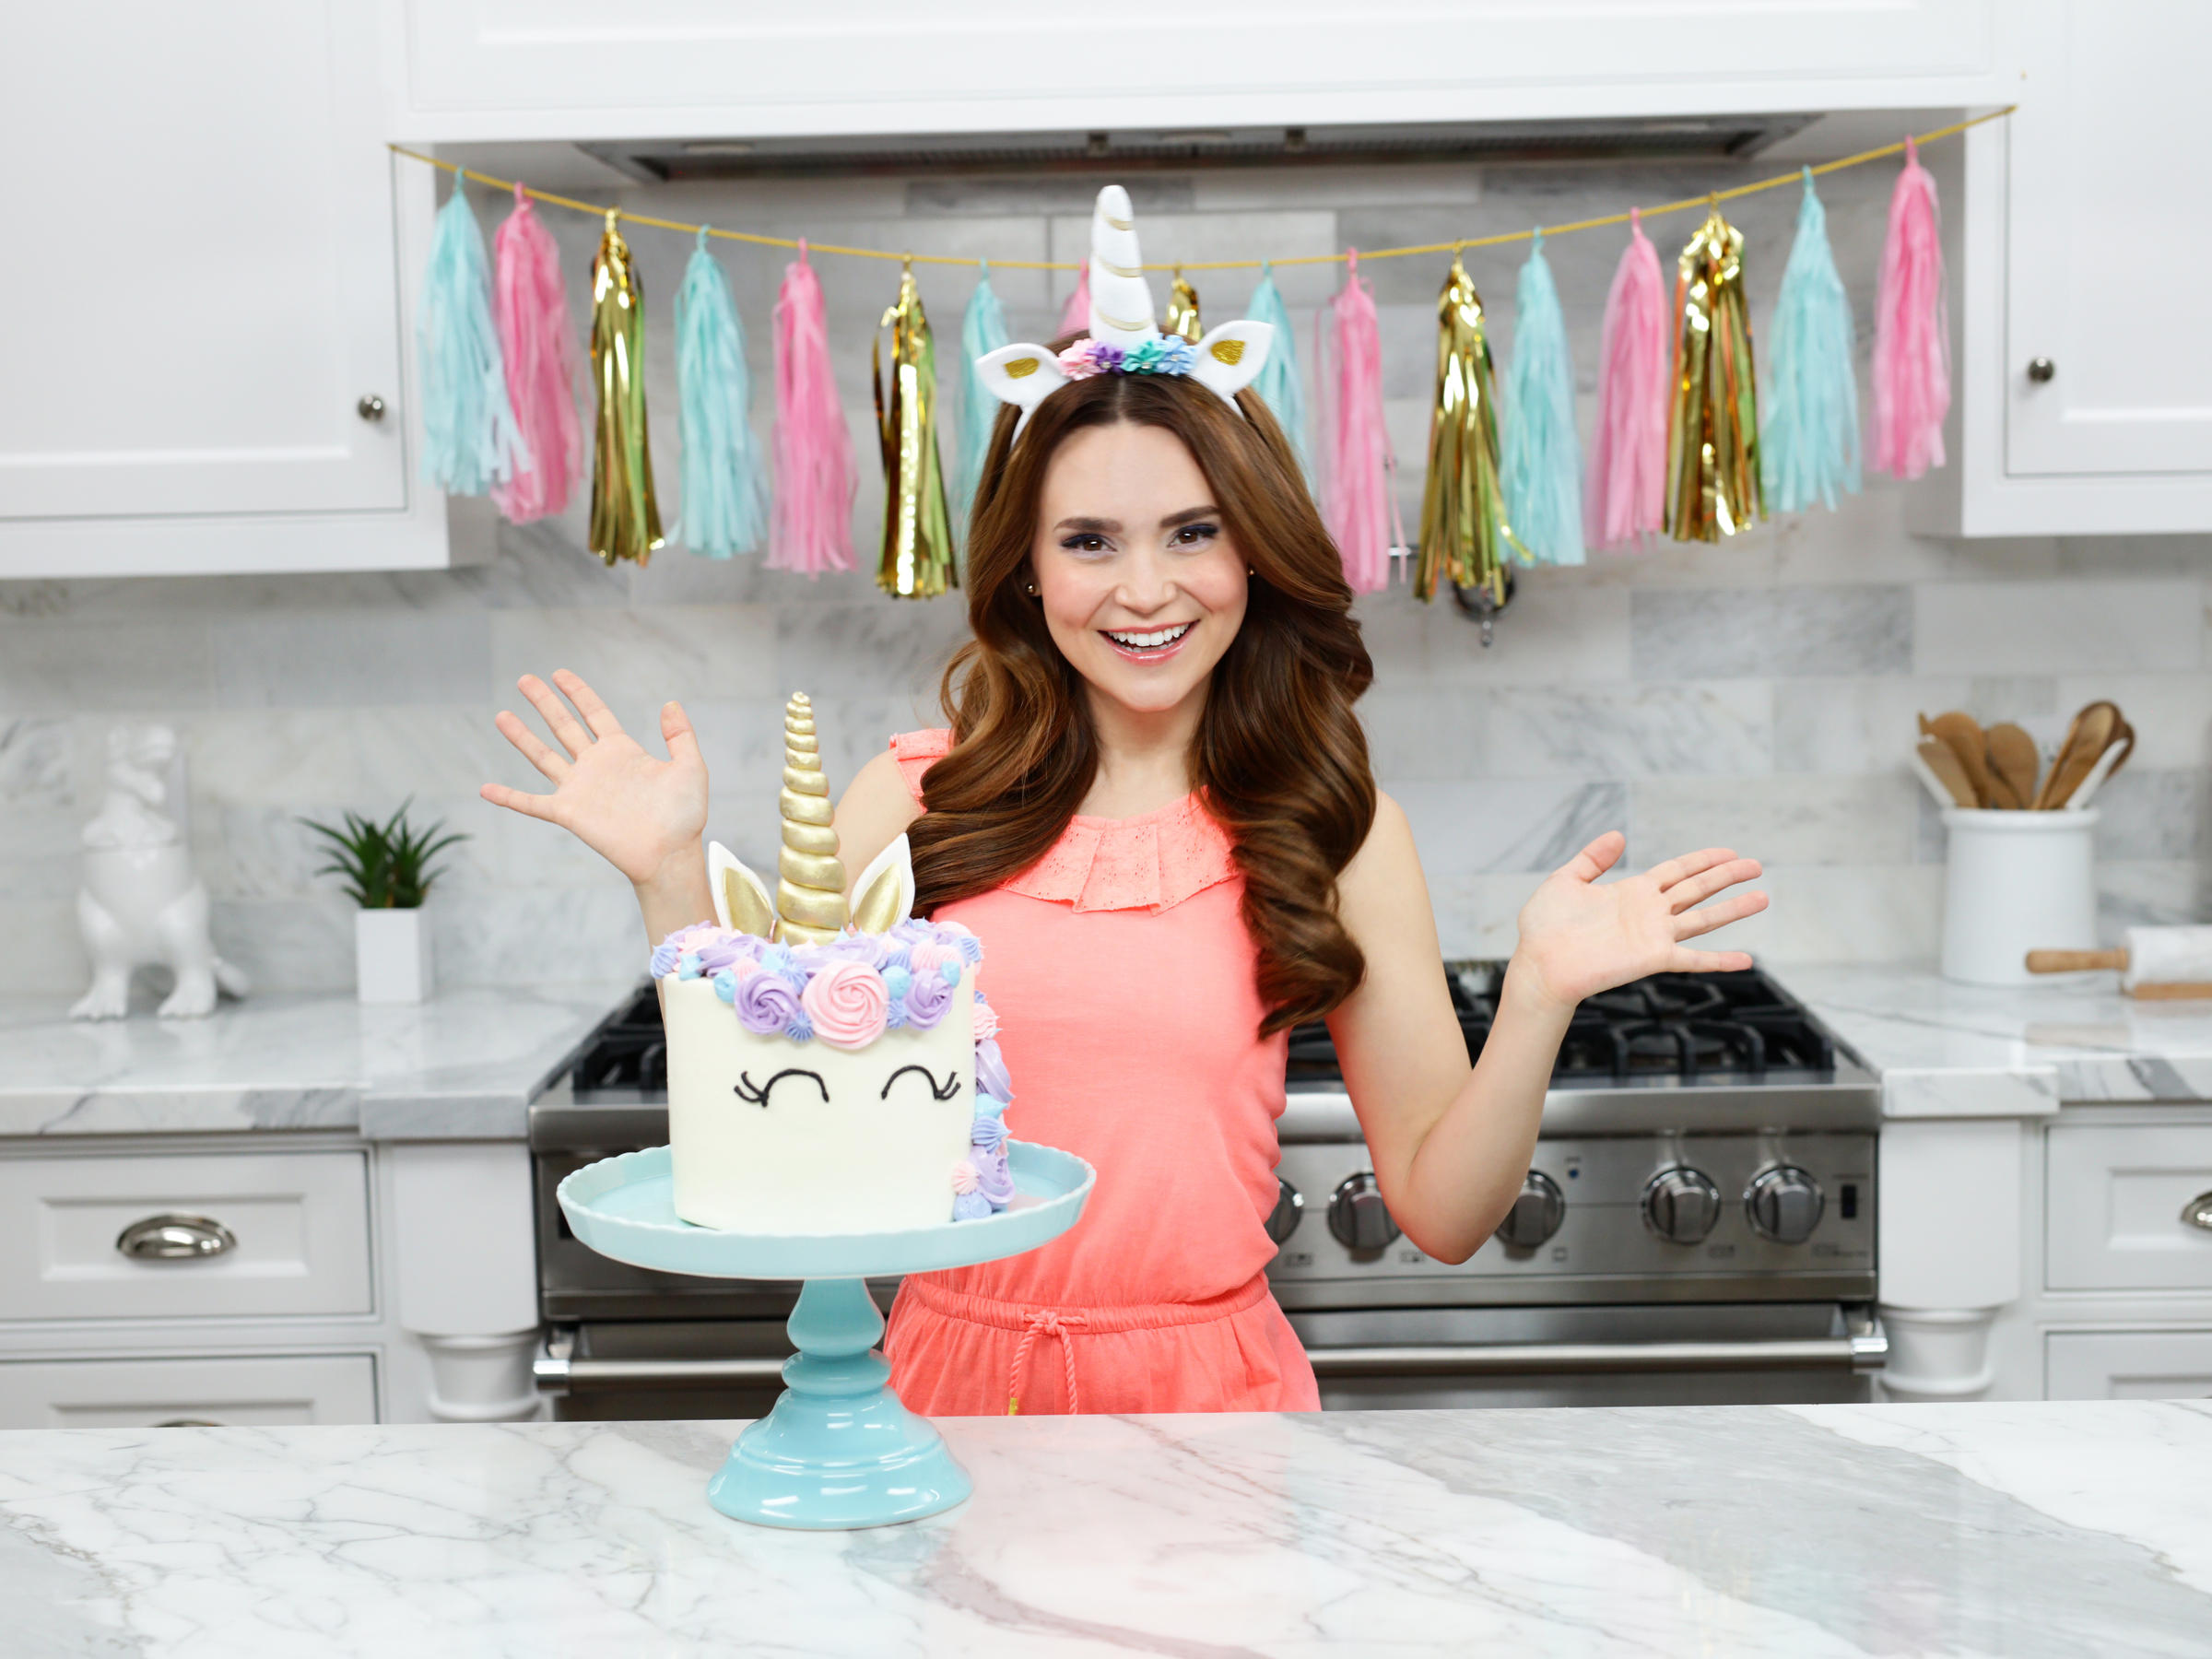 Rosanna pansino is a youtube star and a celebrity chef her youtube cooking show nerdy nummies has millions of subscribers many of whom are children